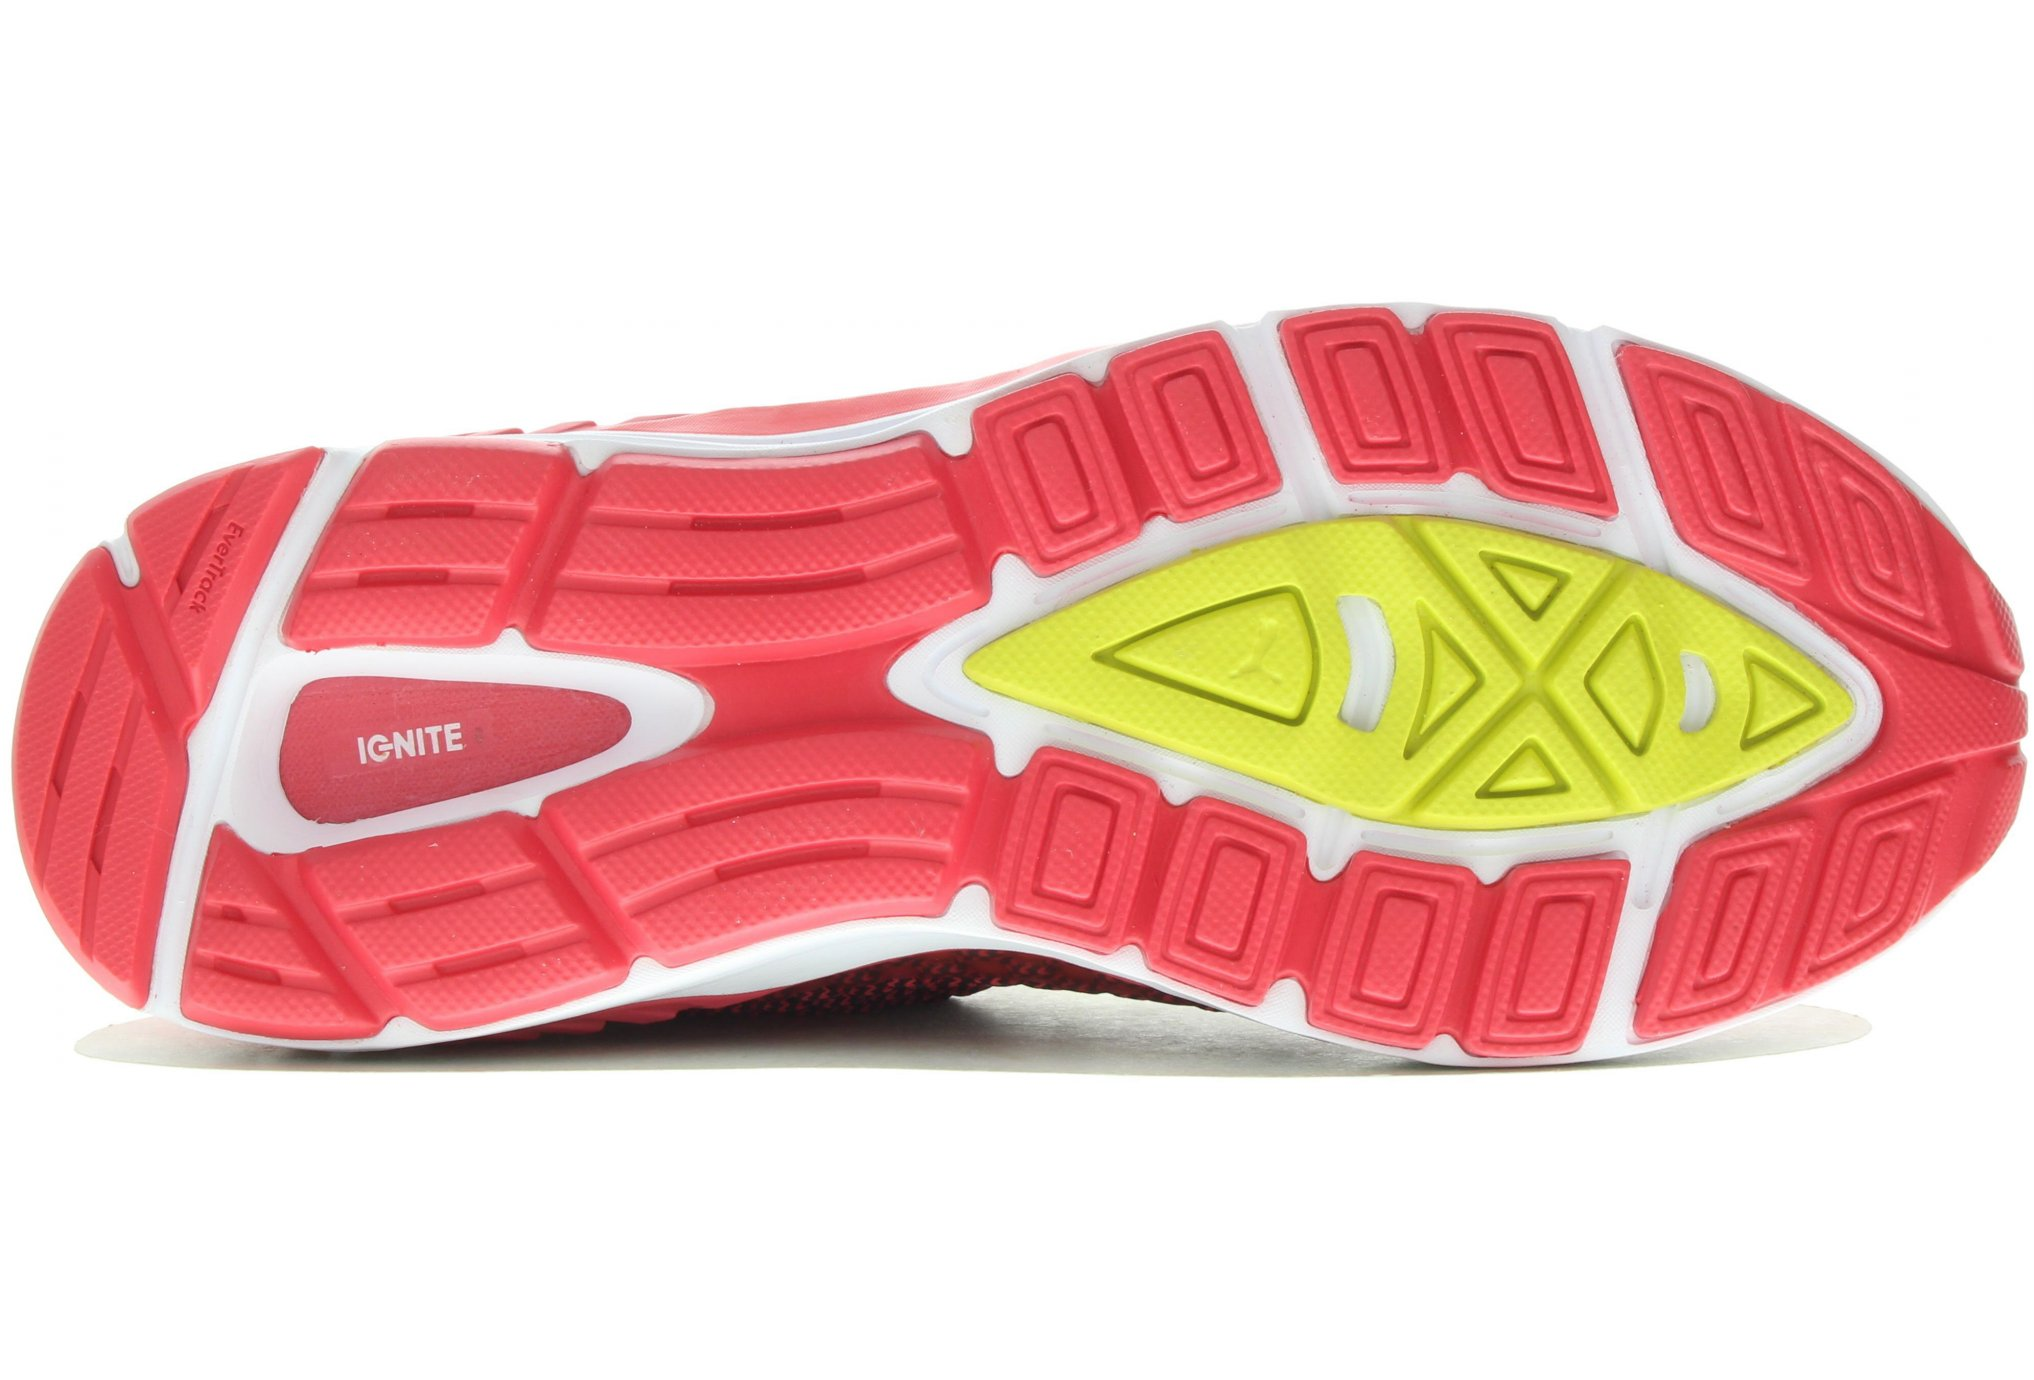 Ignite Run U TestLa Running De Speed Chaussure Puma 3 – 600 nwmvOyN80